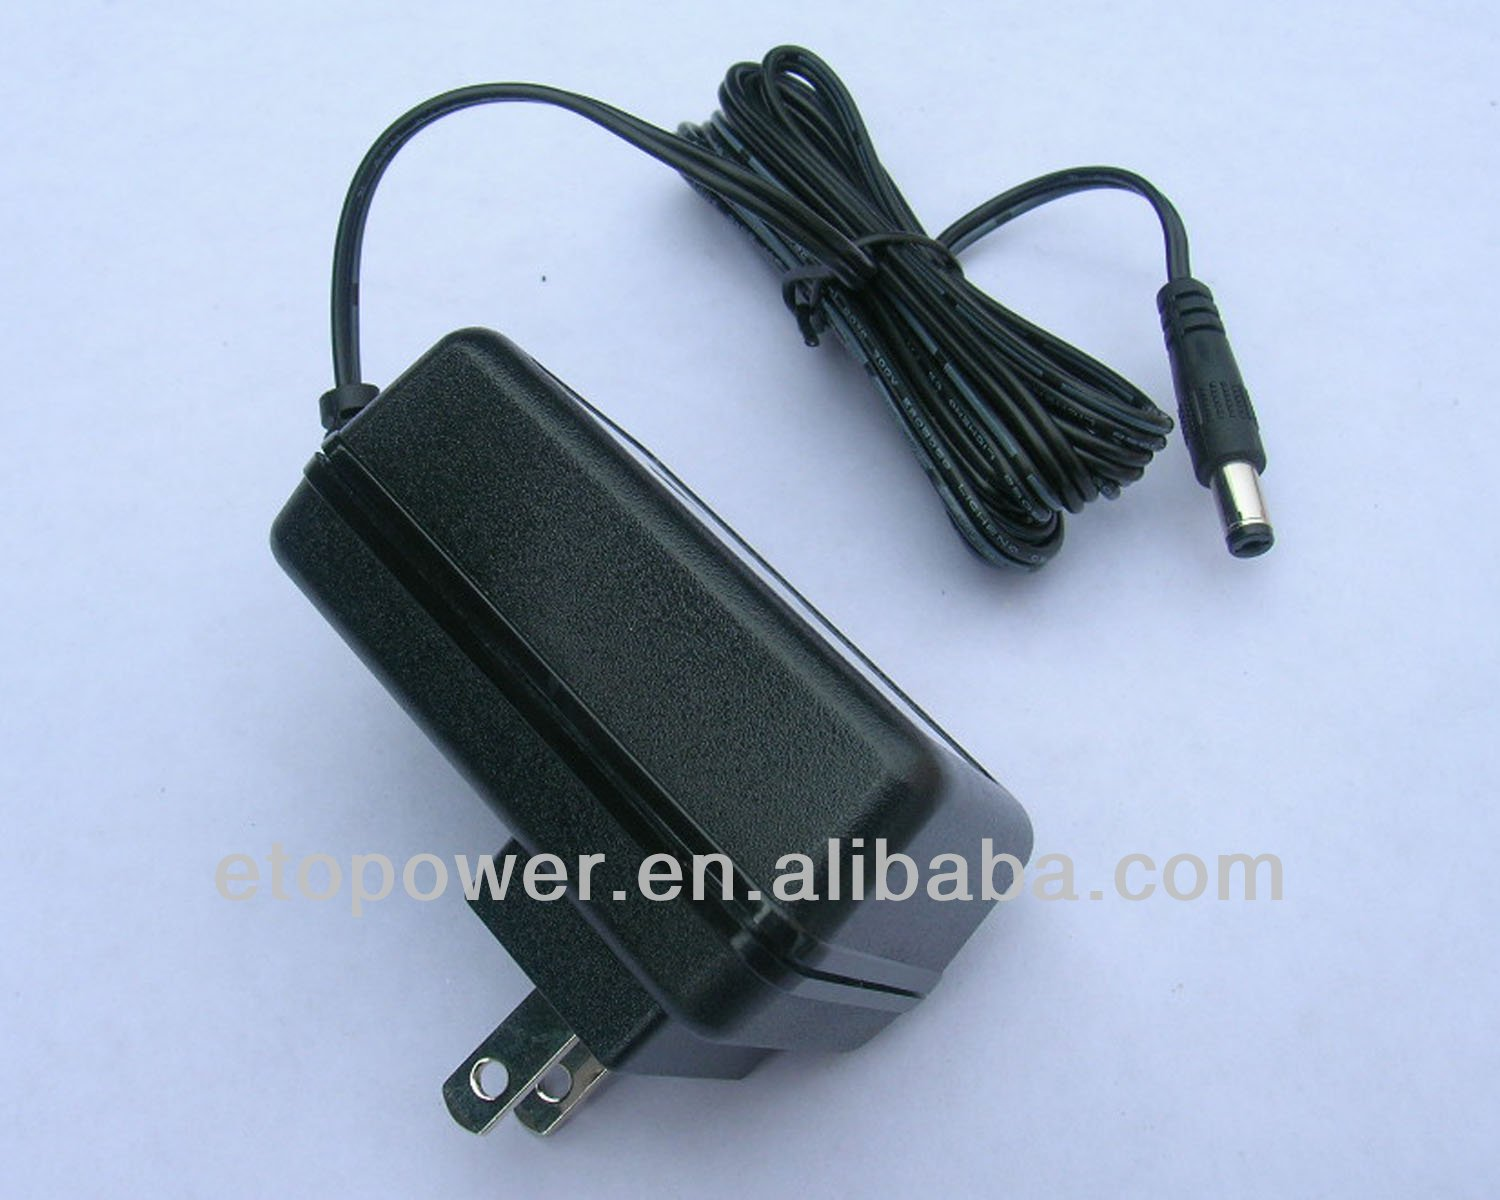 36w power supply adaptor